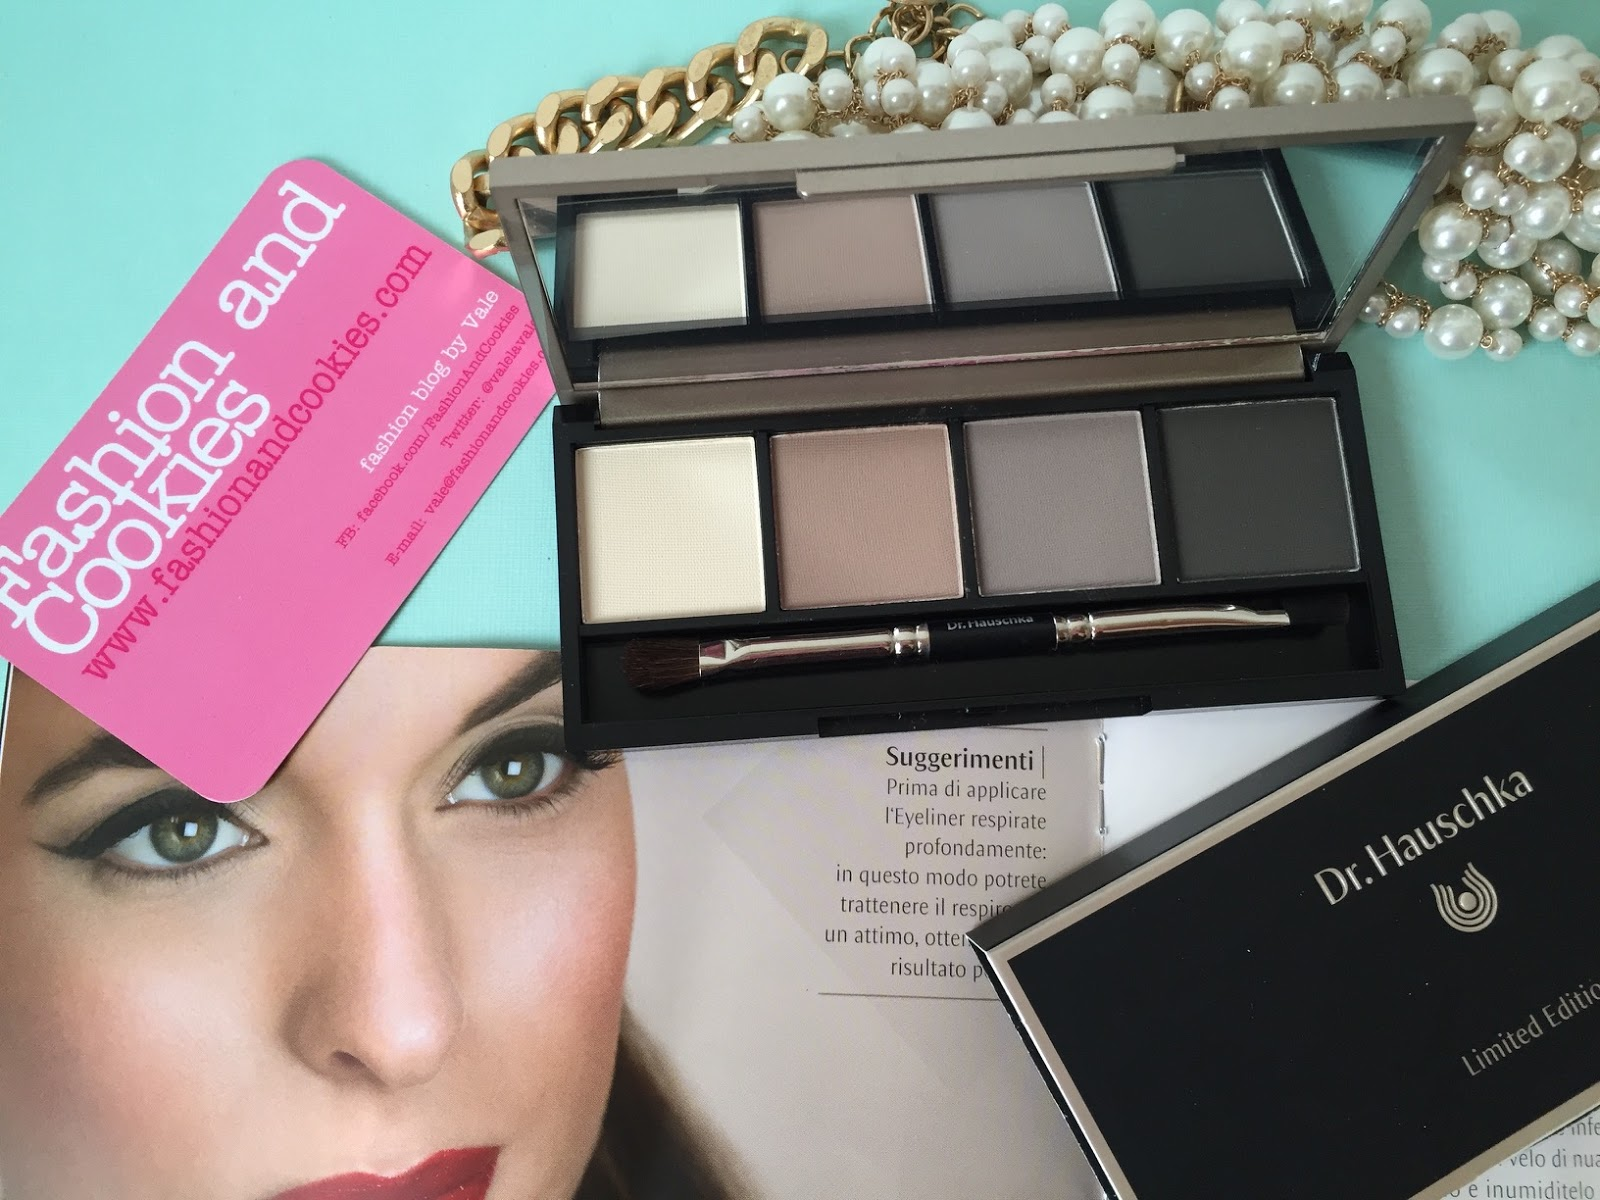 Dr. Hauschka Limited Edition palette Sguardi Preziosi on Fashion and Cookies fashion and beauty blog, fashion blogger style